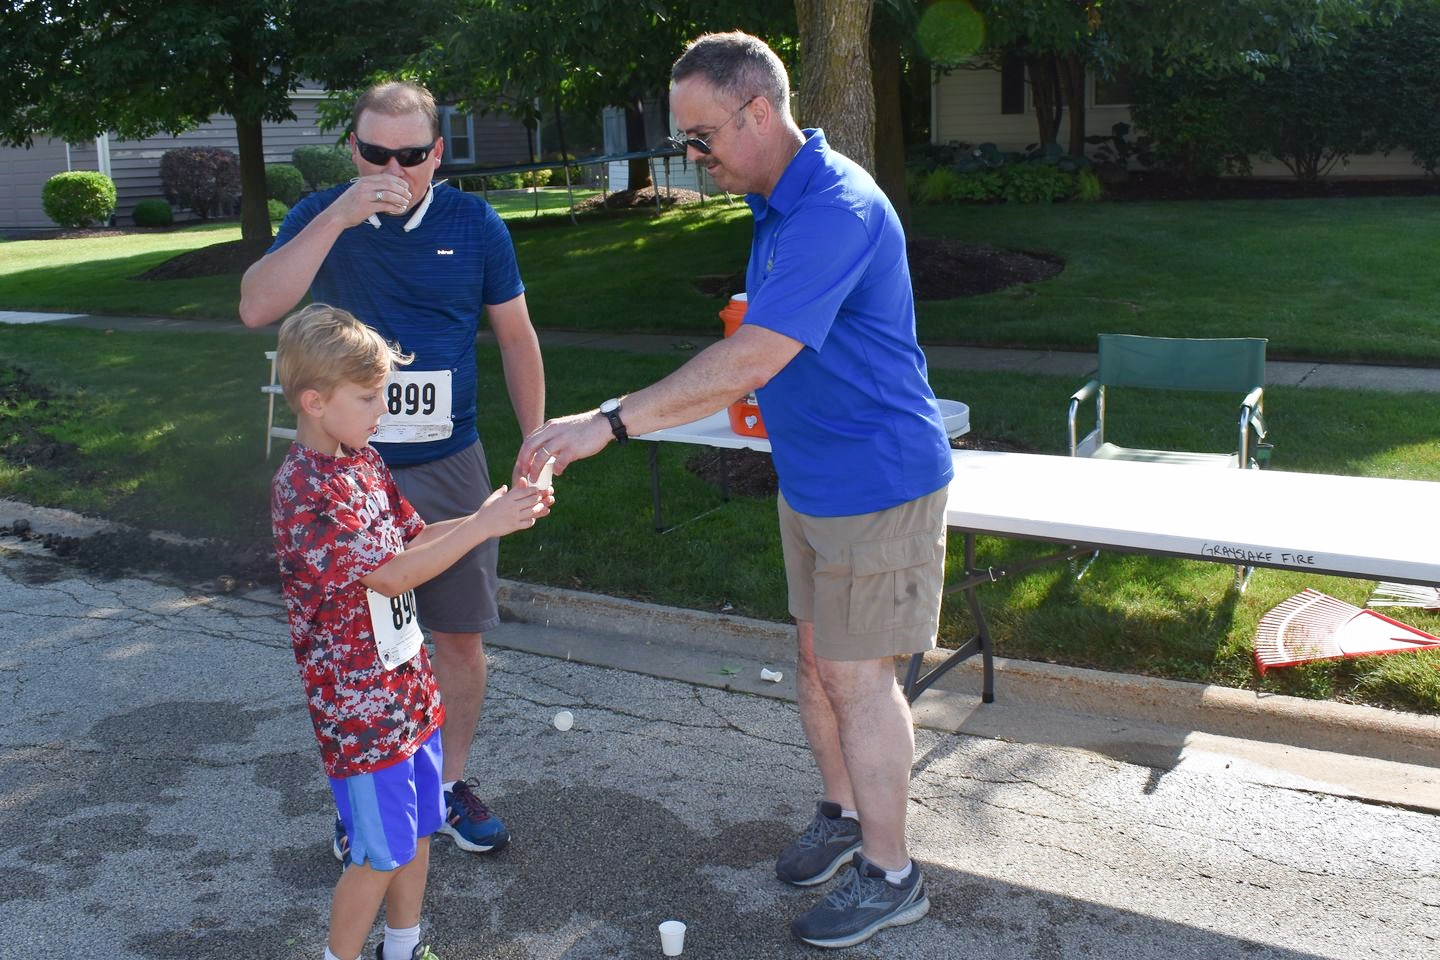 It was great to see many families enjoying the Grayslake 5K